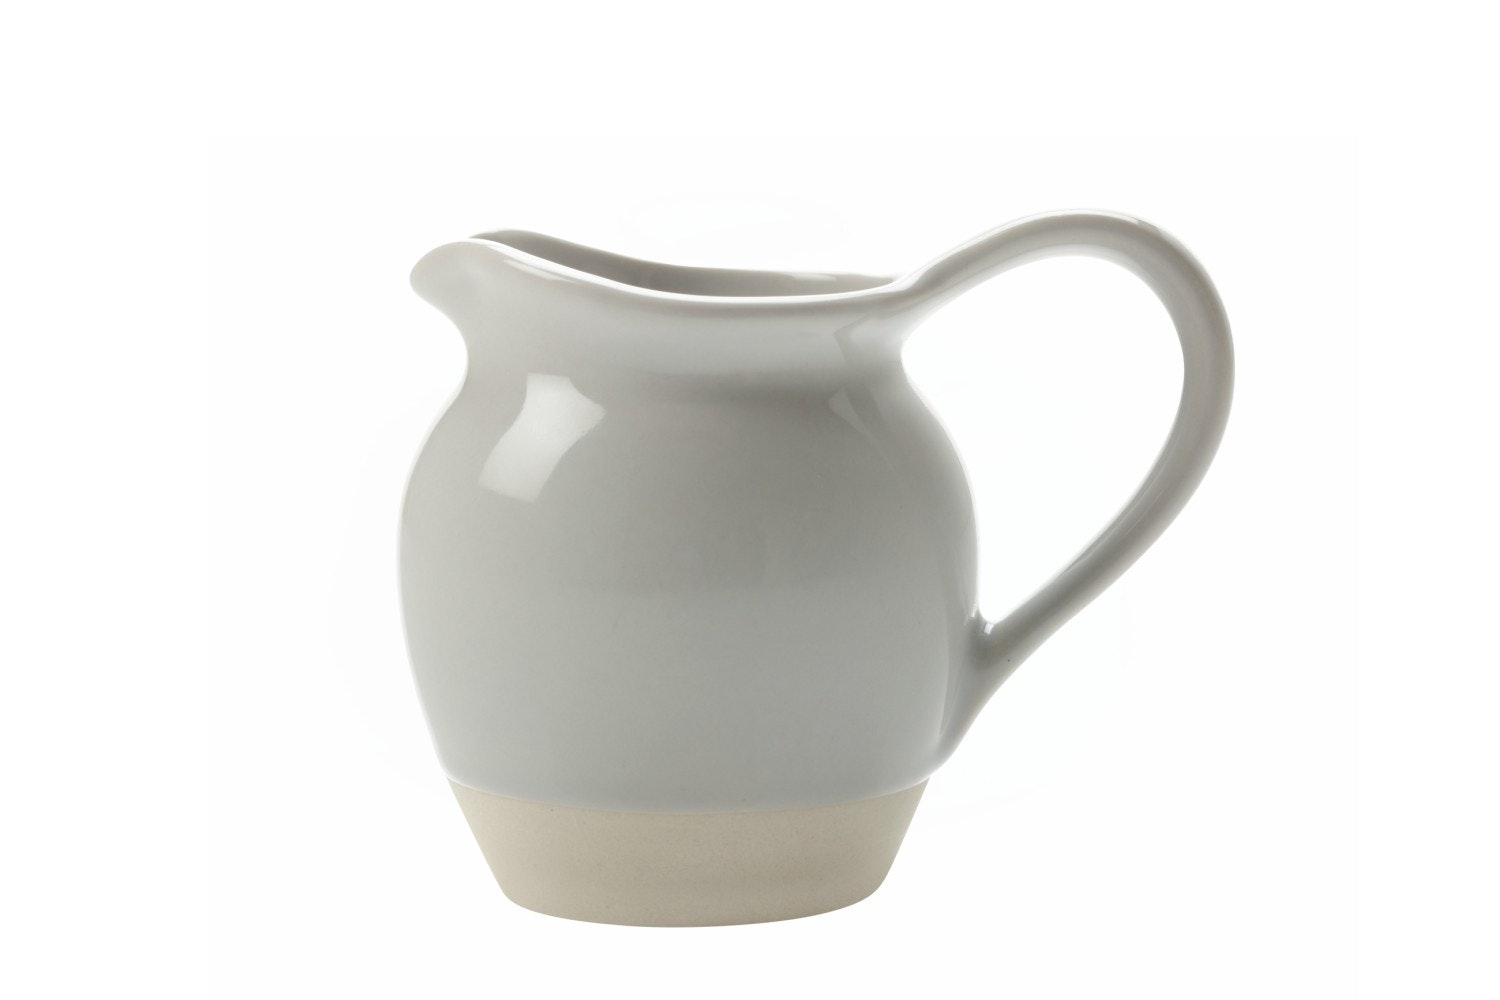 Mw Artisan Jug | Small | Cloud